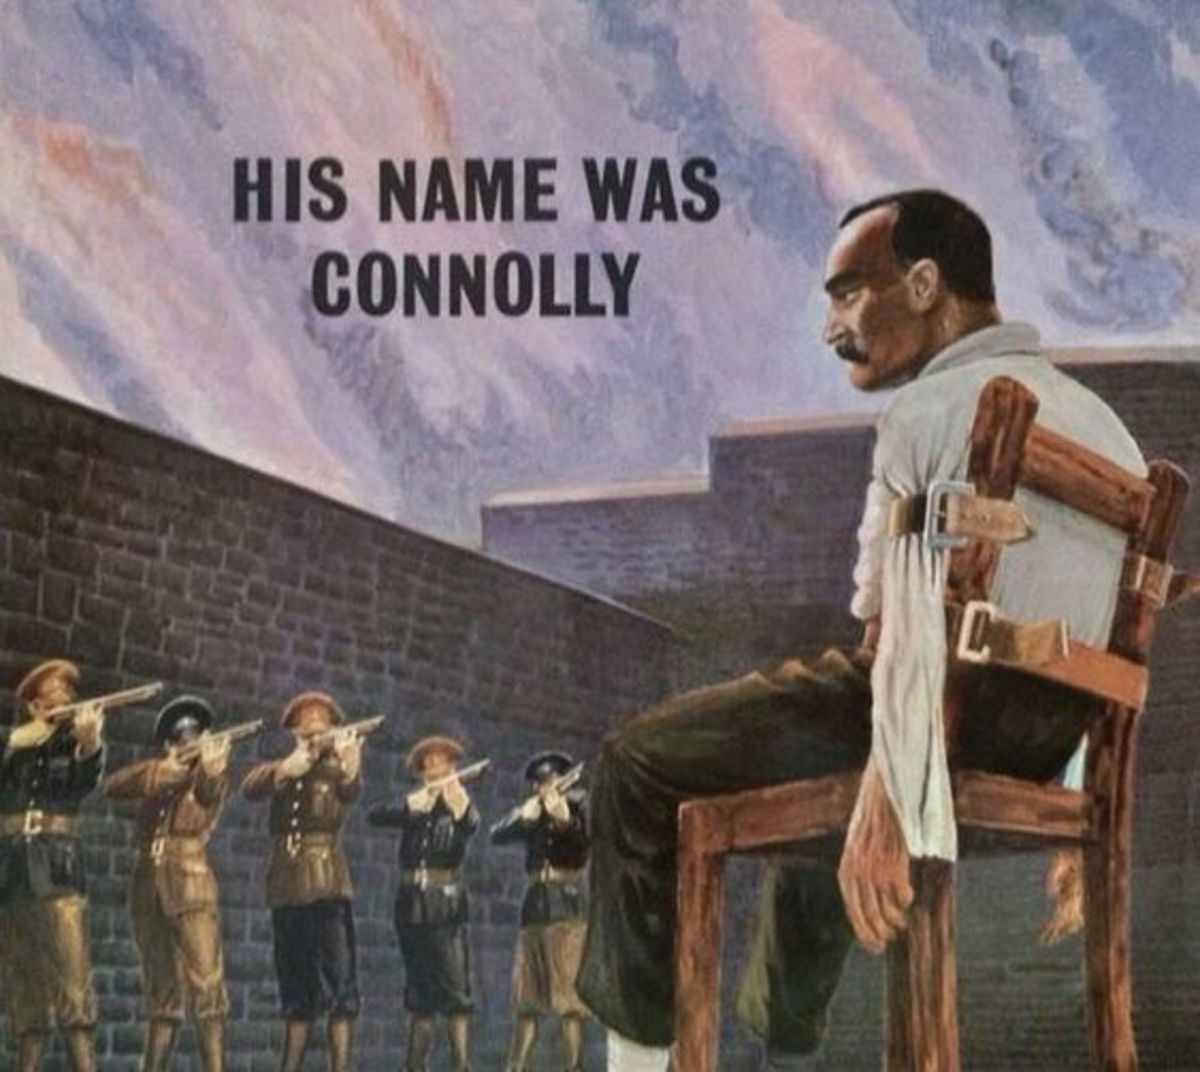 James Connolly, horrifically injured defending the Dublin GPO during the Easter 1916 Rising, was executed by the British for sedition in 1916, tethered to a chair.